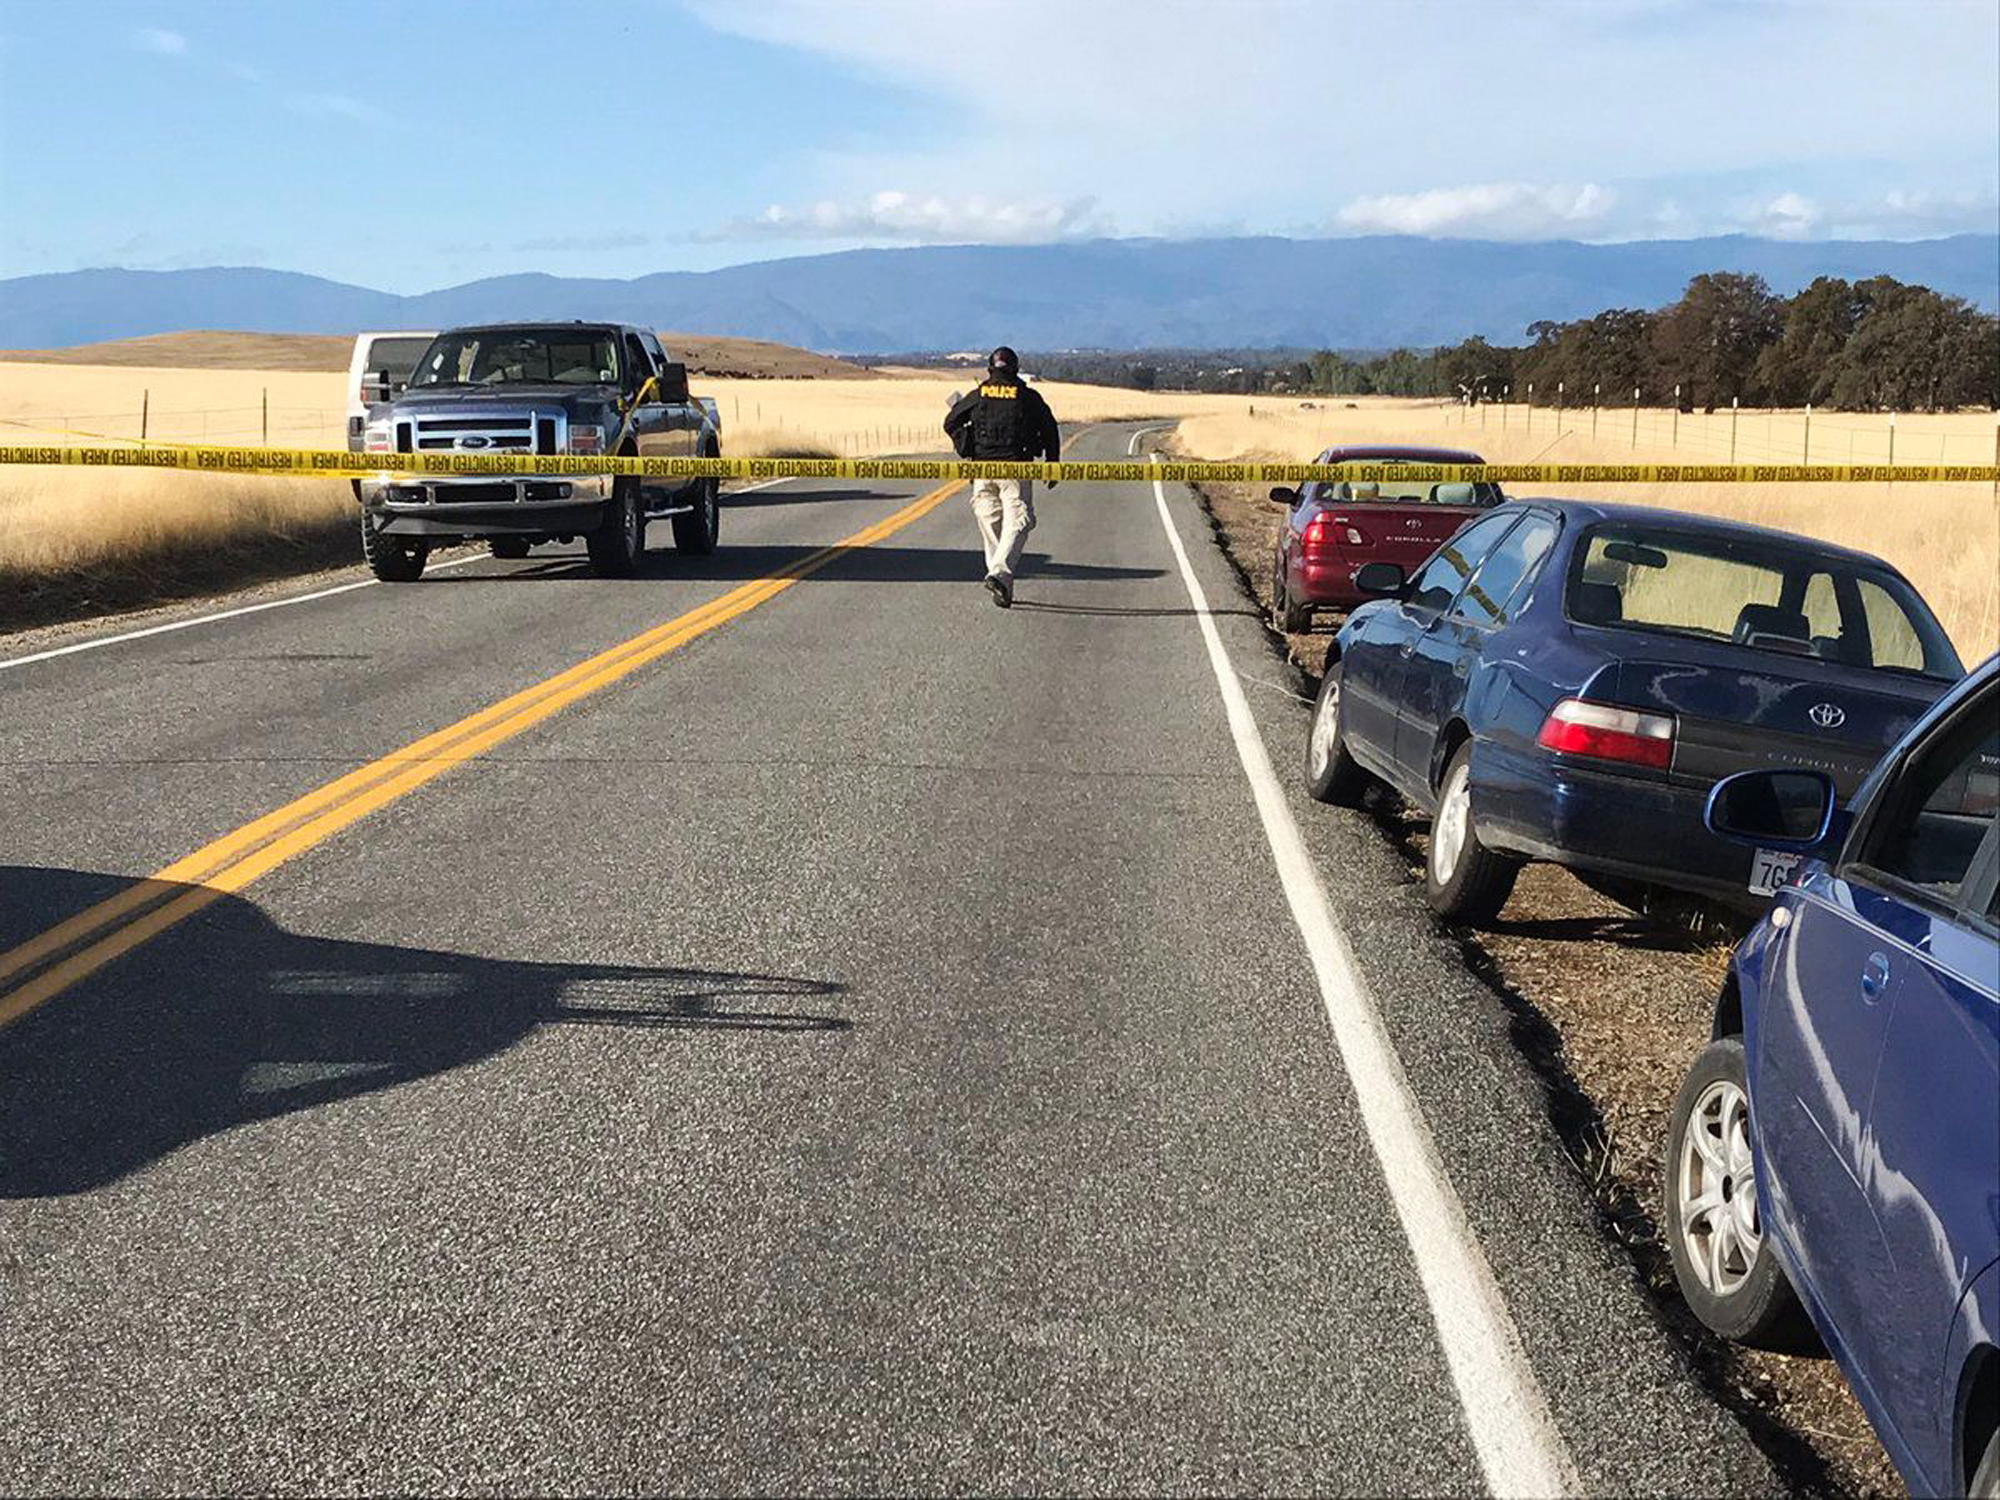 Gunman targets people at random in California town, kills 4